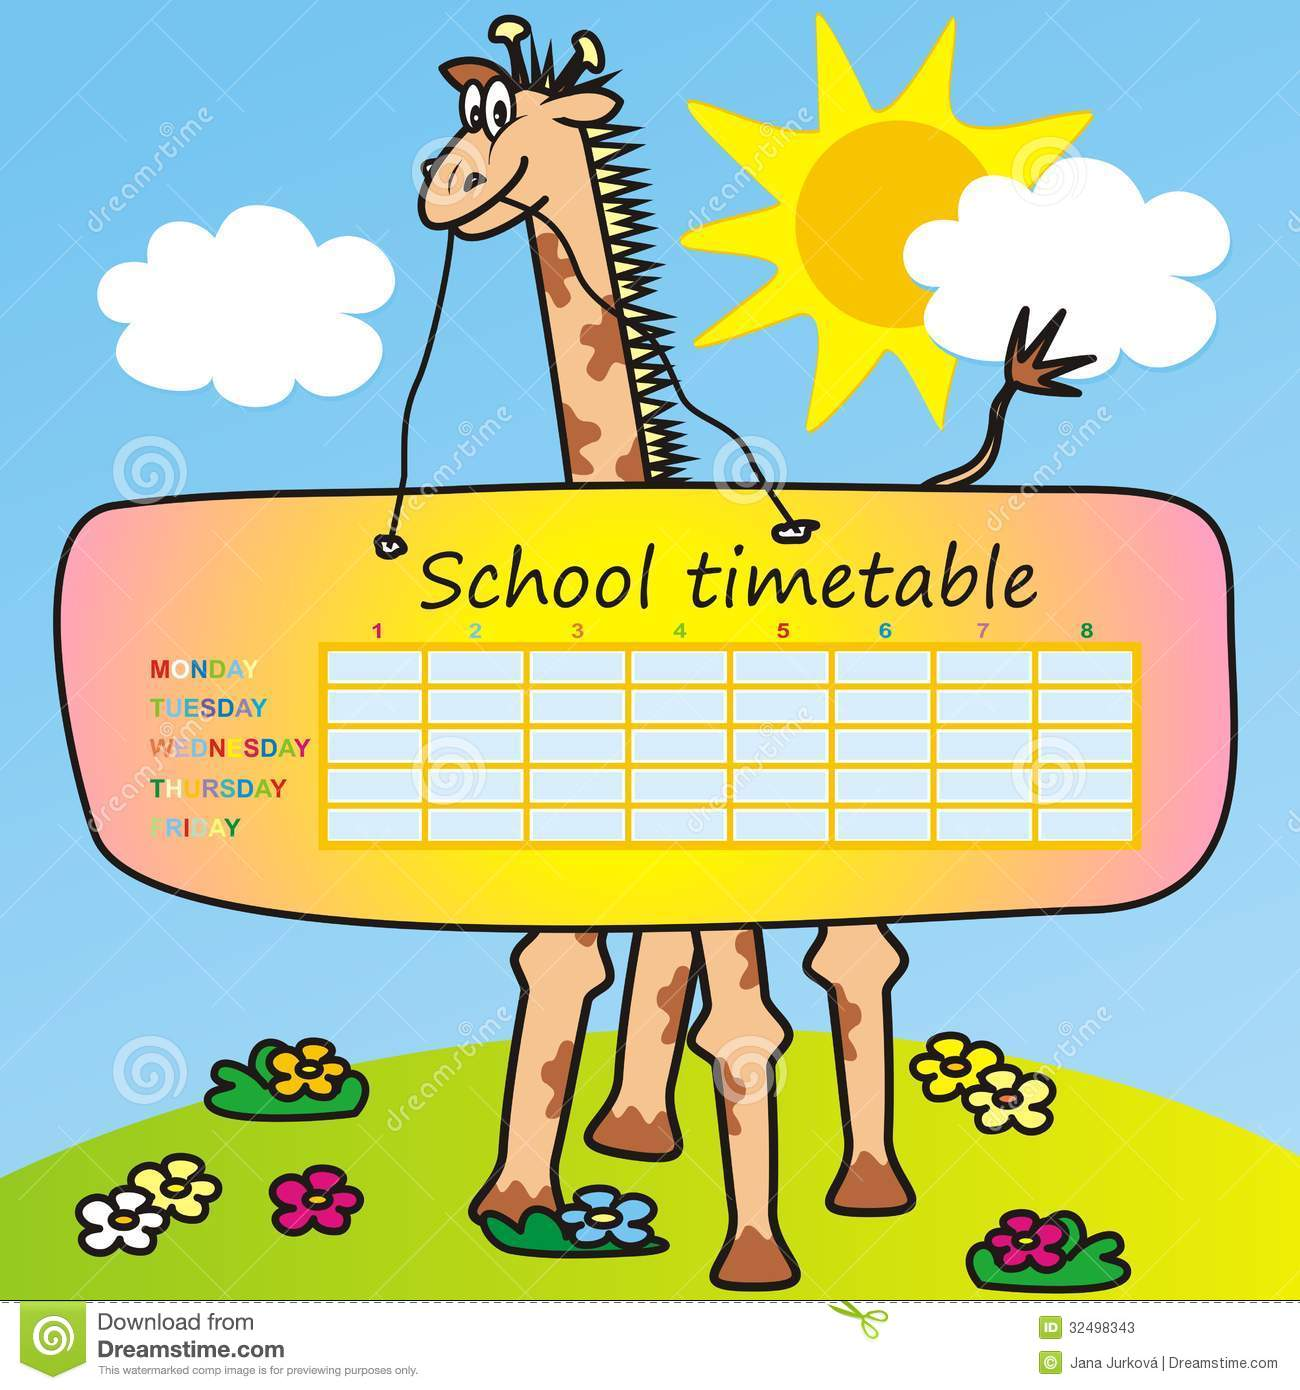 Timetablegiraffe Photos Image 32498343 – School Time Table Designs